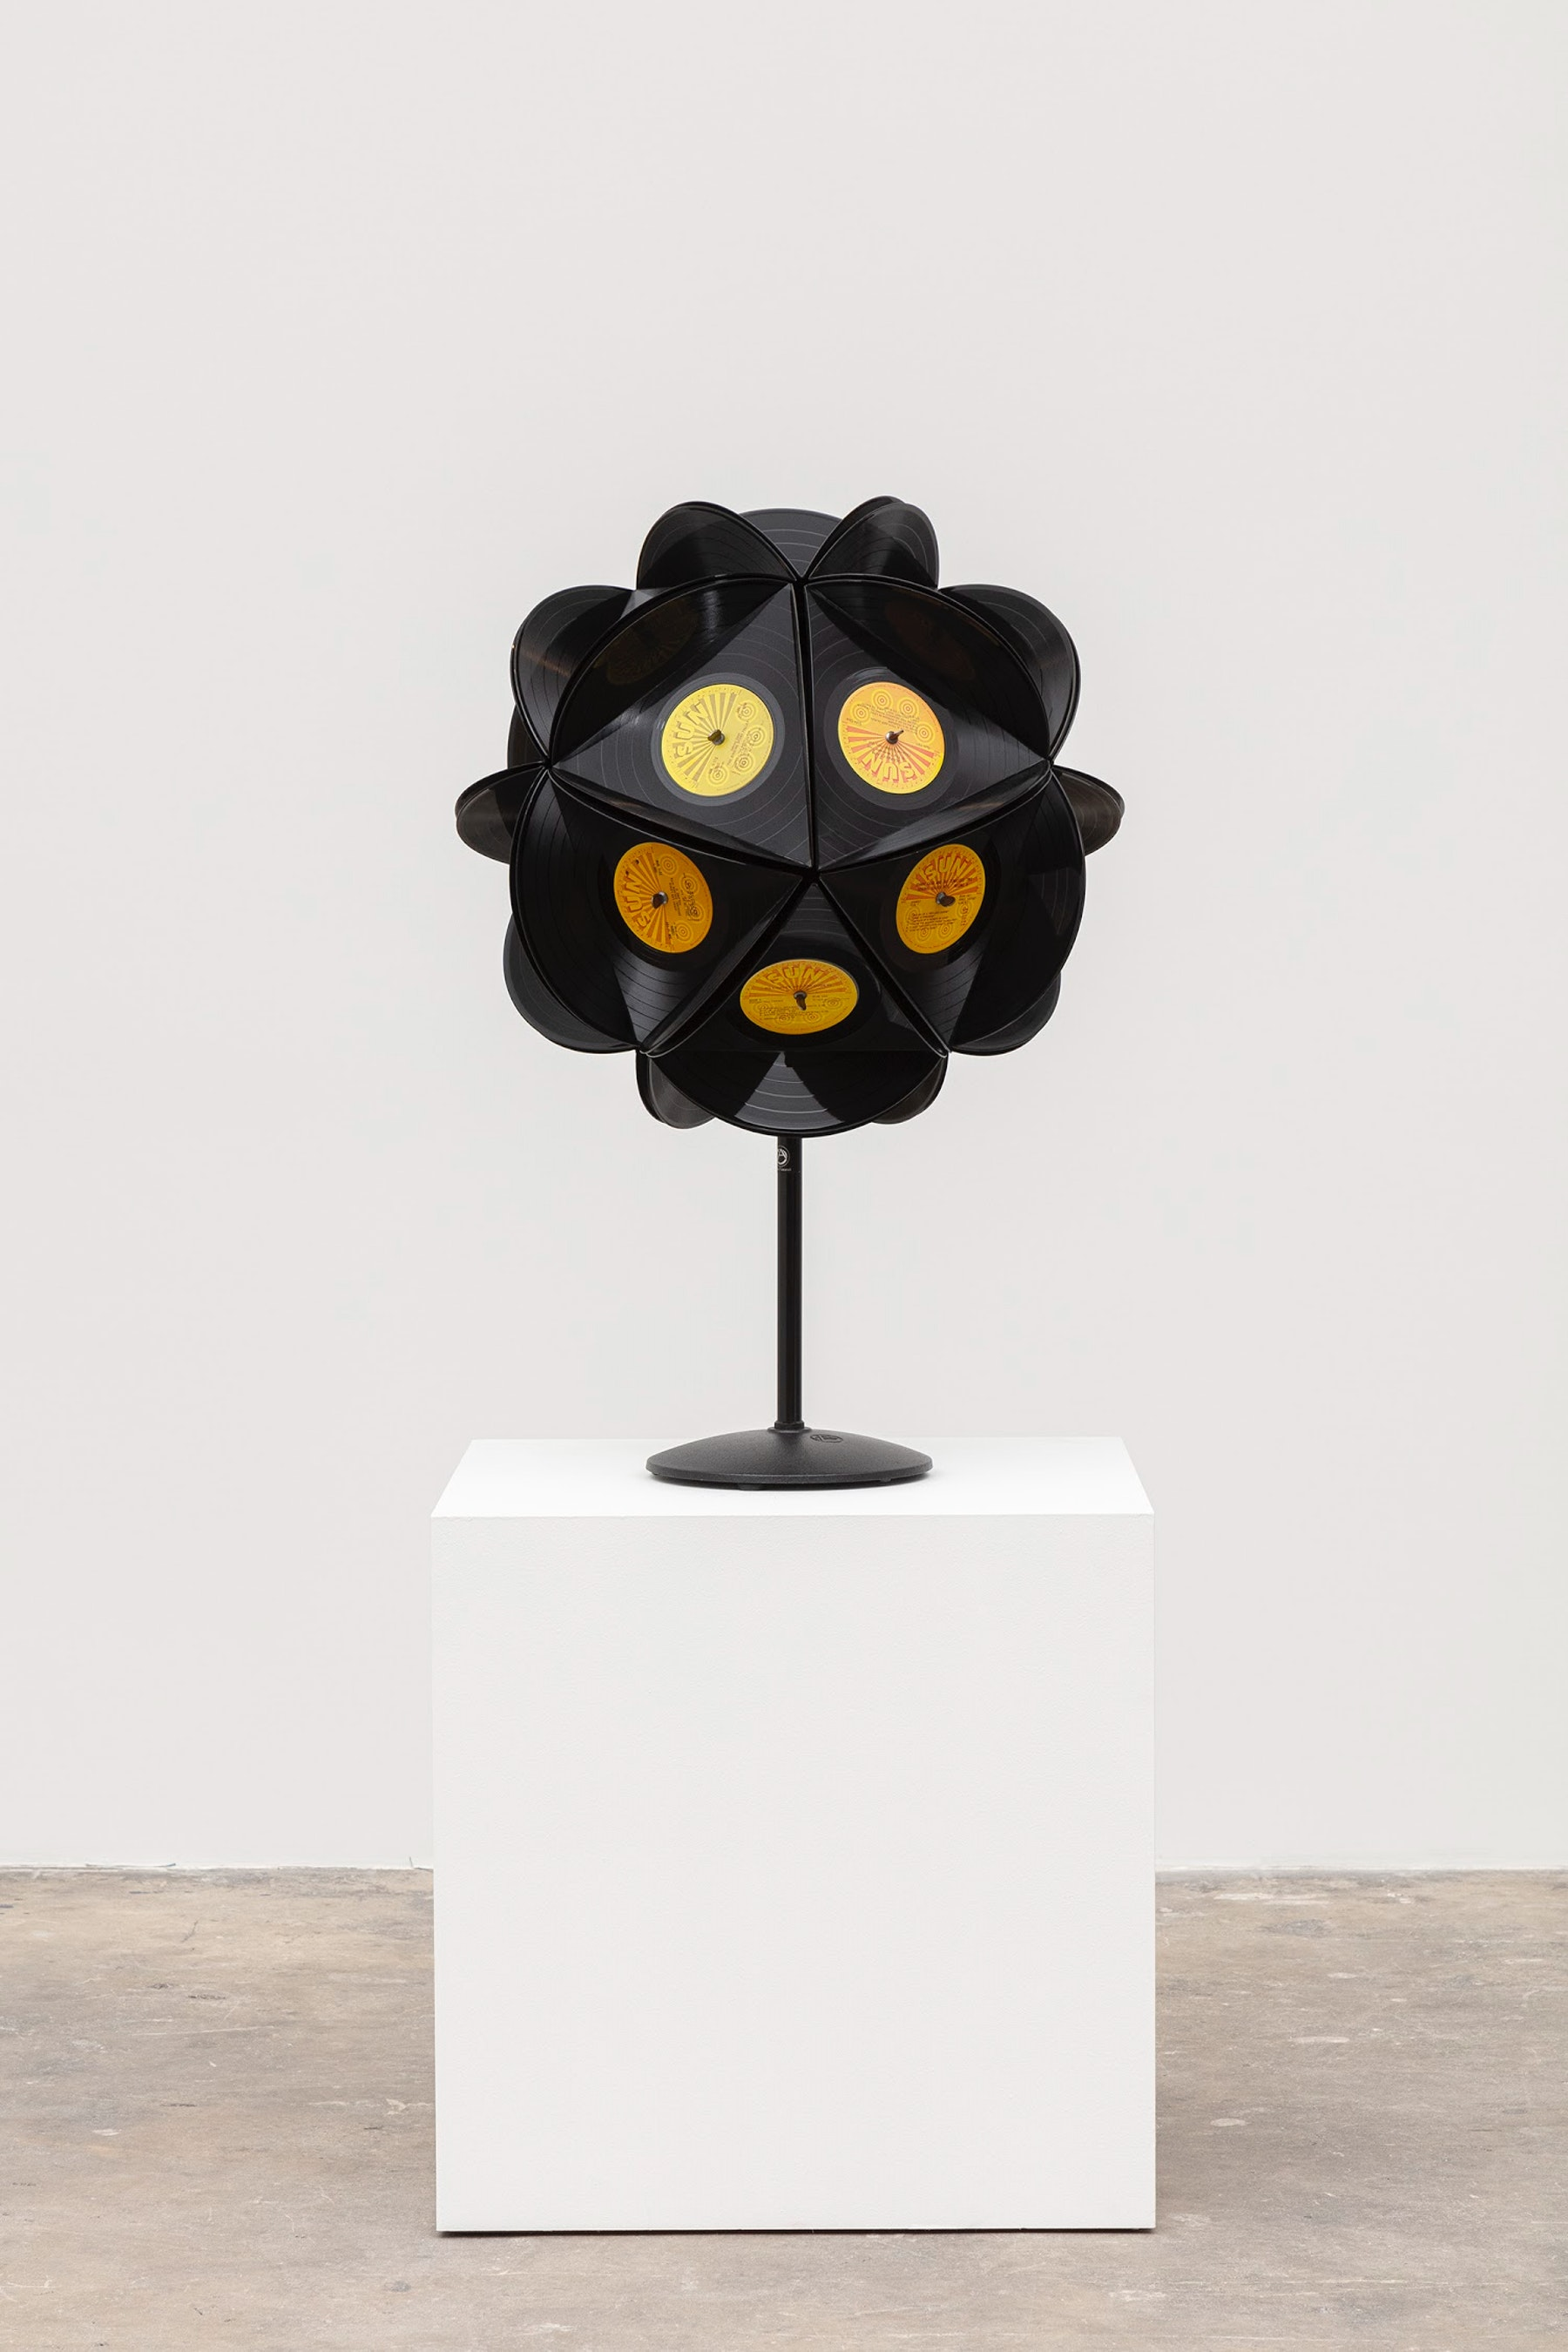 """Sean Duffy """"Star Seed,"""" 2021 20 Sun records, microphone stand, wood, enamel and metal hardware 34"""" x 21"""" x 21"""" [HxWxD] (86.36 x 53.34 x 53.34 cm) Inventory #DUF357 Courtesy of the artist and Vielmetter Los Angeles Photo credit: Evan Bedford"""